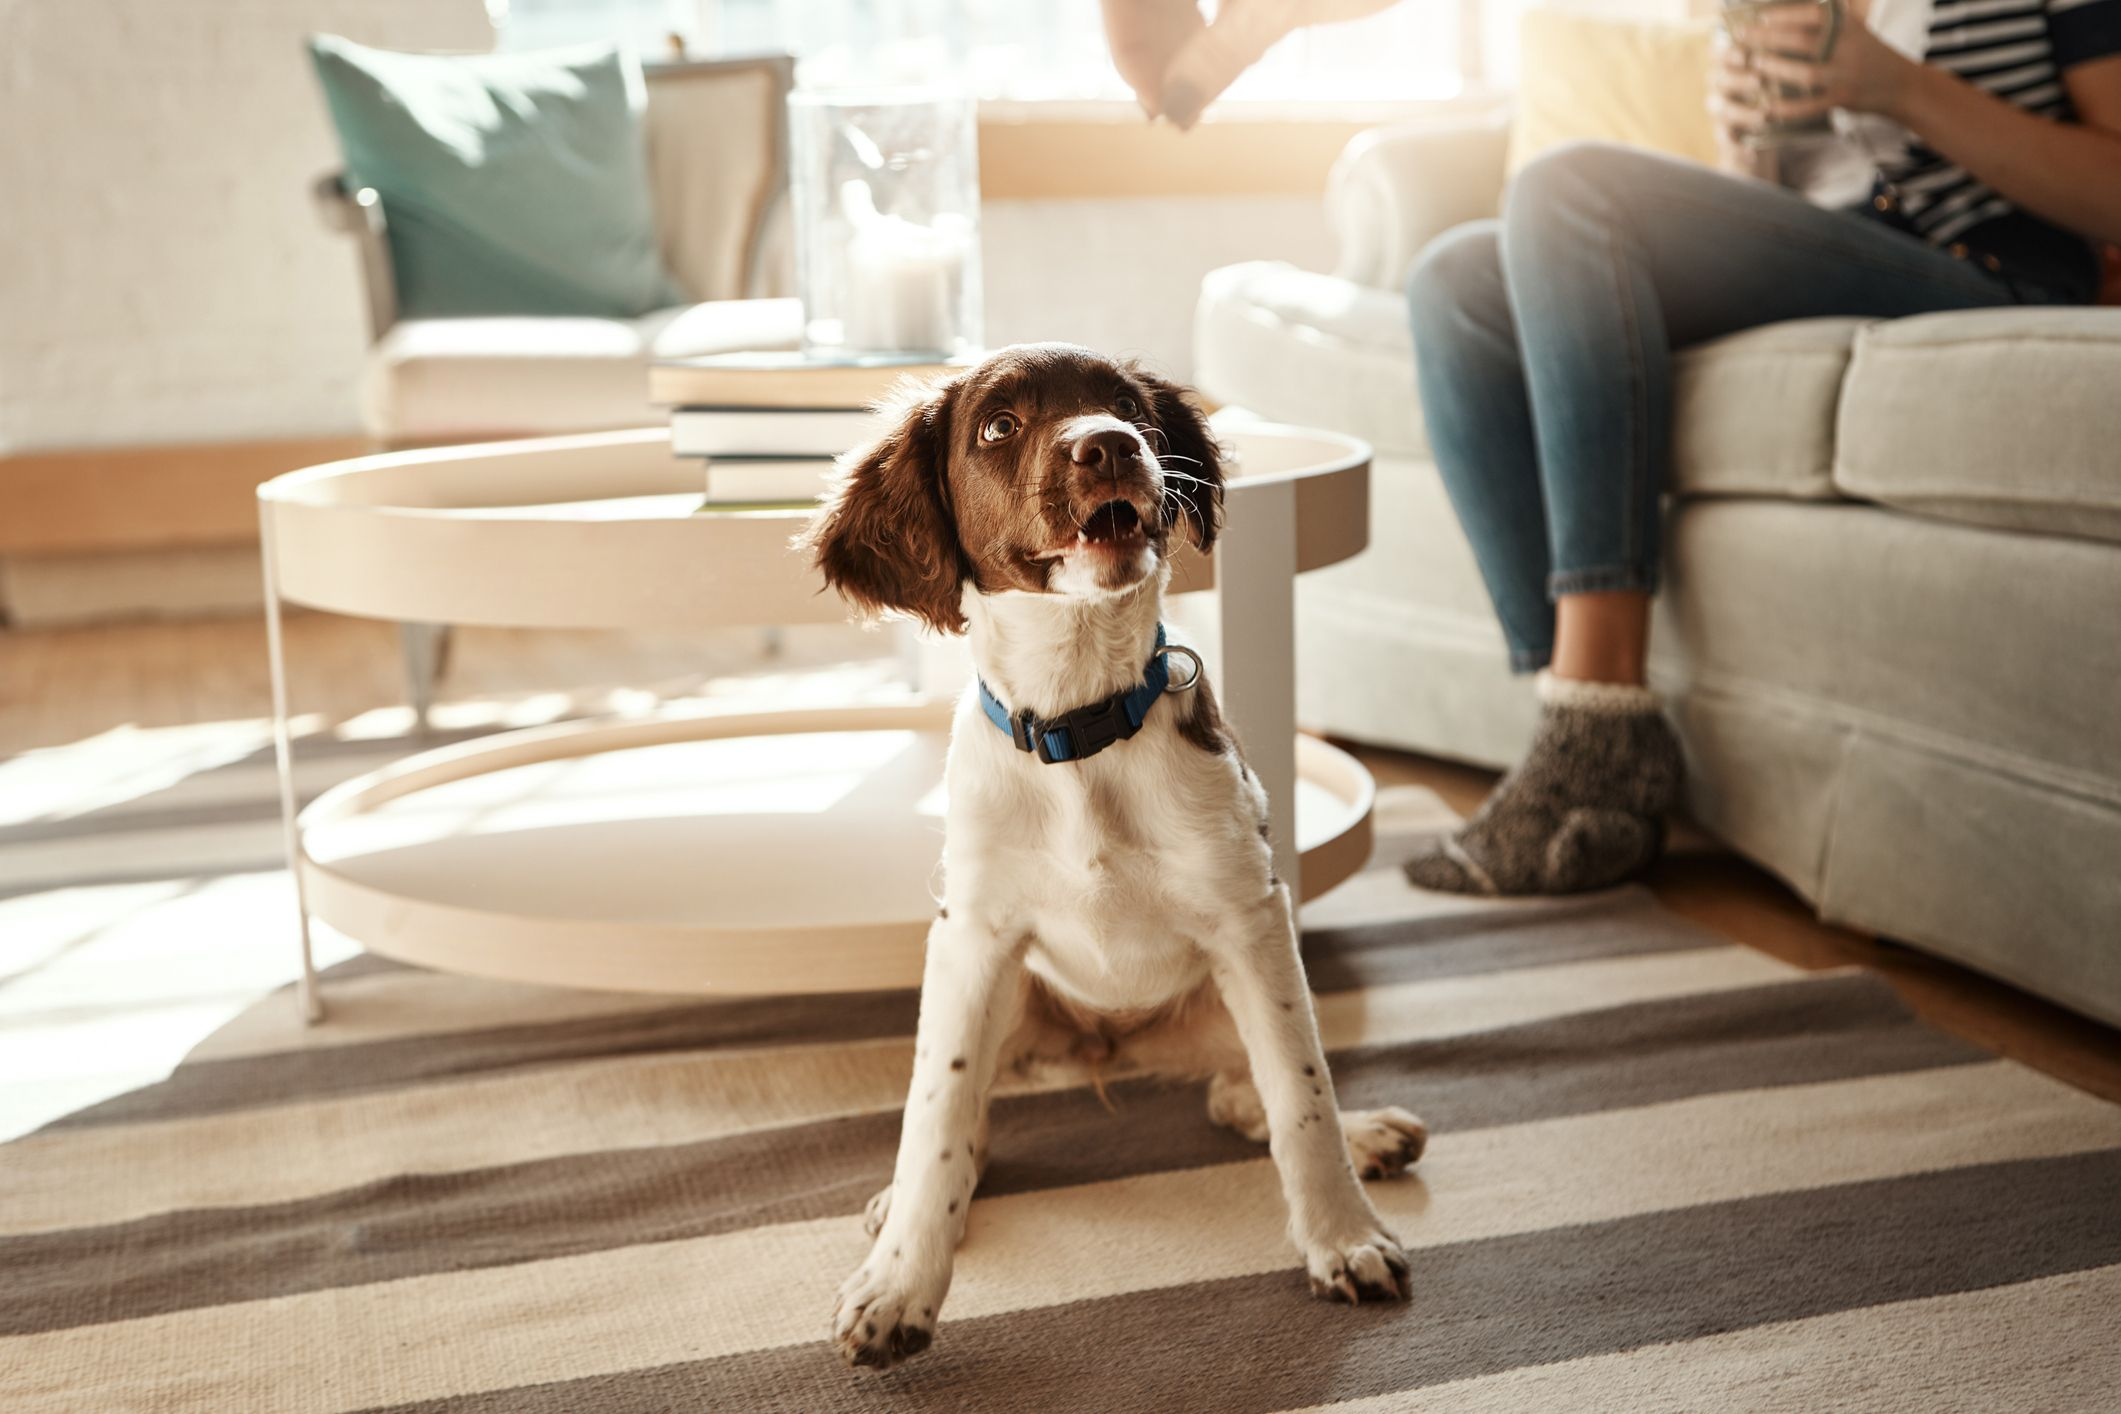 Dog owner shares brilliant hack to remove pet hair from carpets